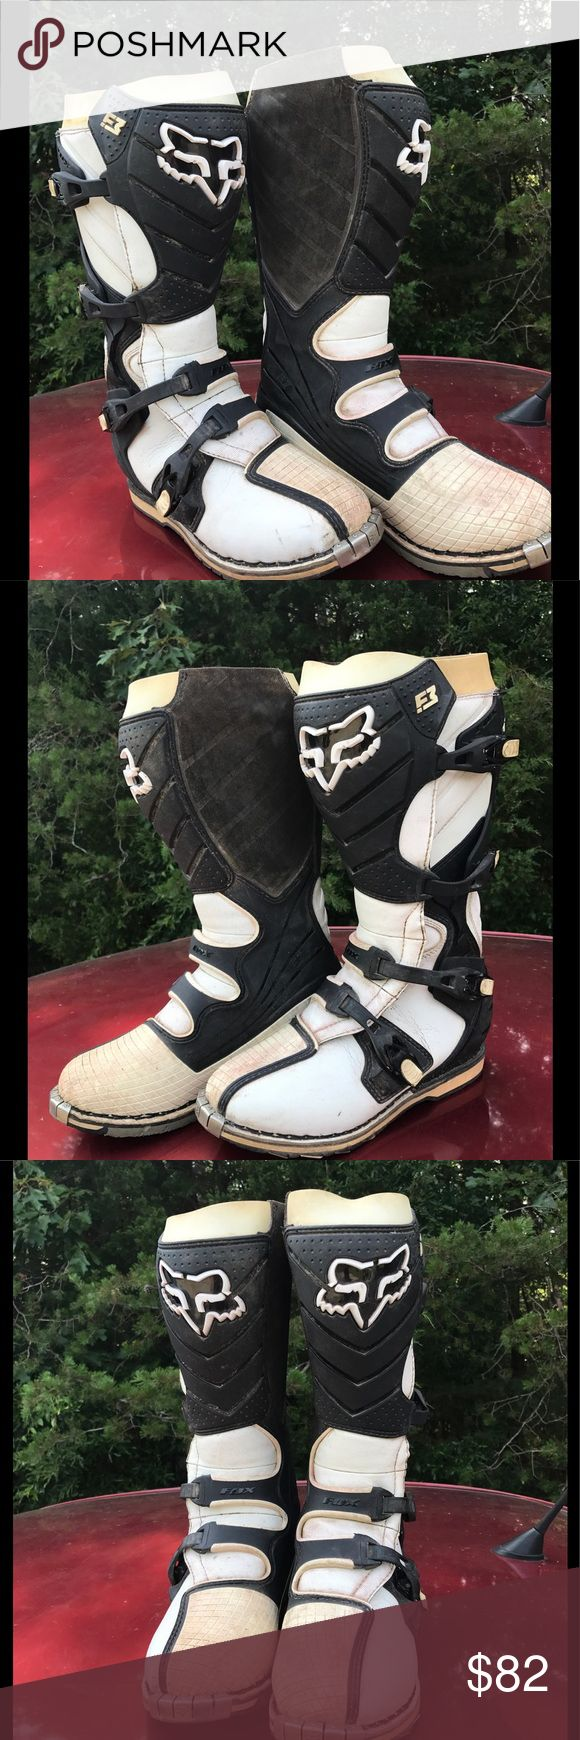 Fox dirt bike racing boots size 10 Fox racing boots, size 10, run a little small in size. Fox Shoes Boots